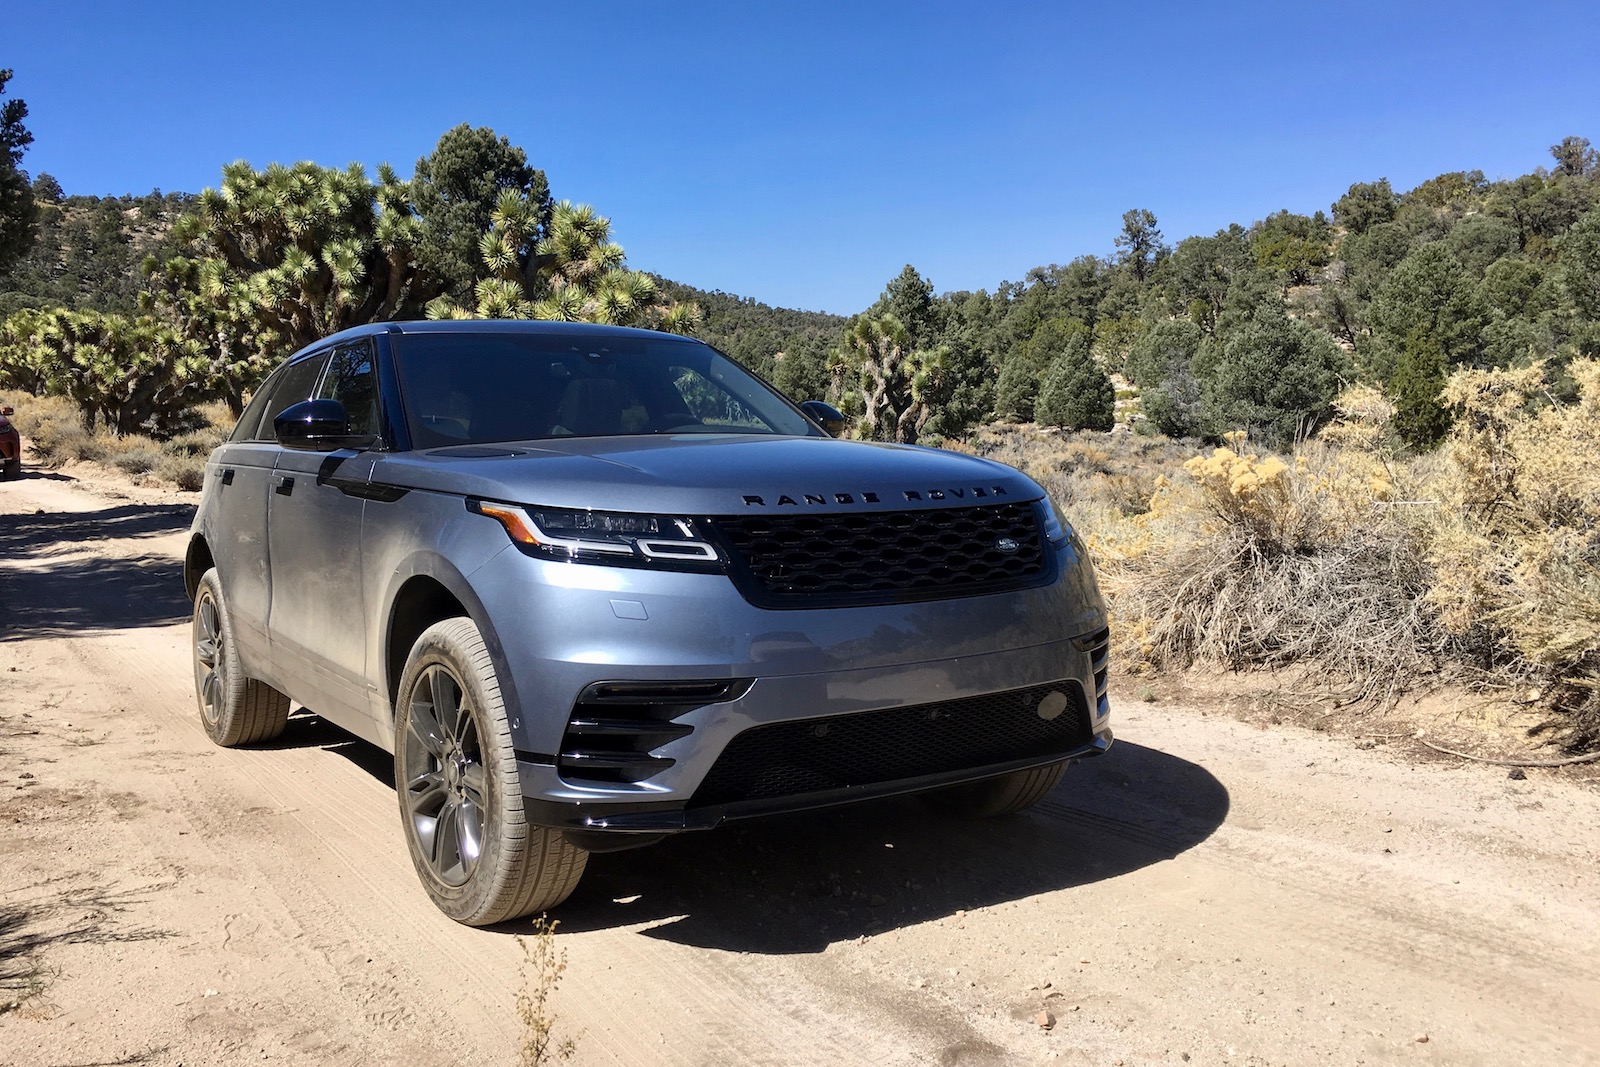 2018 land rover range rover velar first drive review news. Black Bedroom Furniture Sets. Home Design Ideas